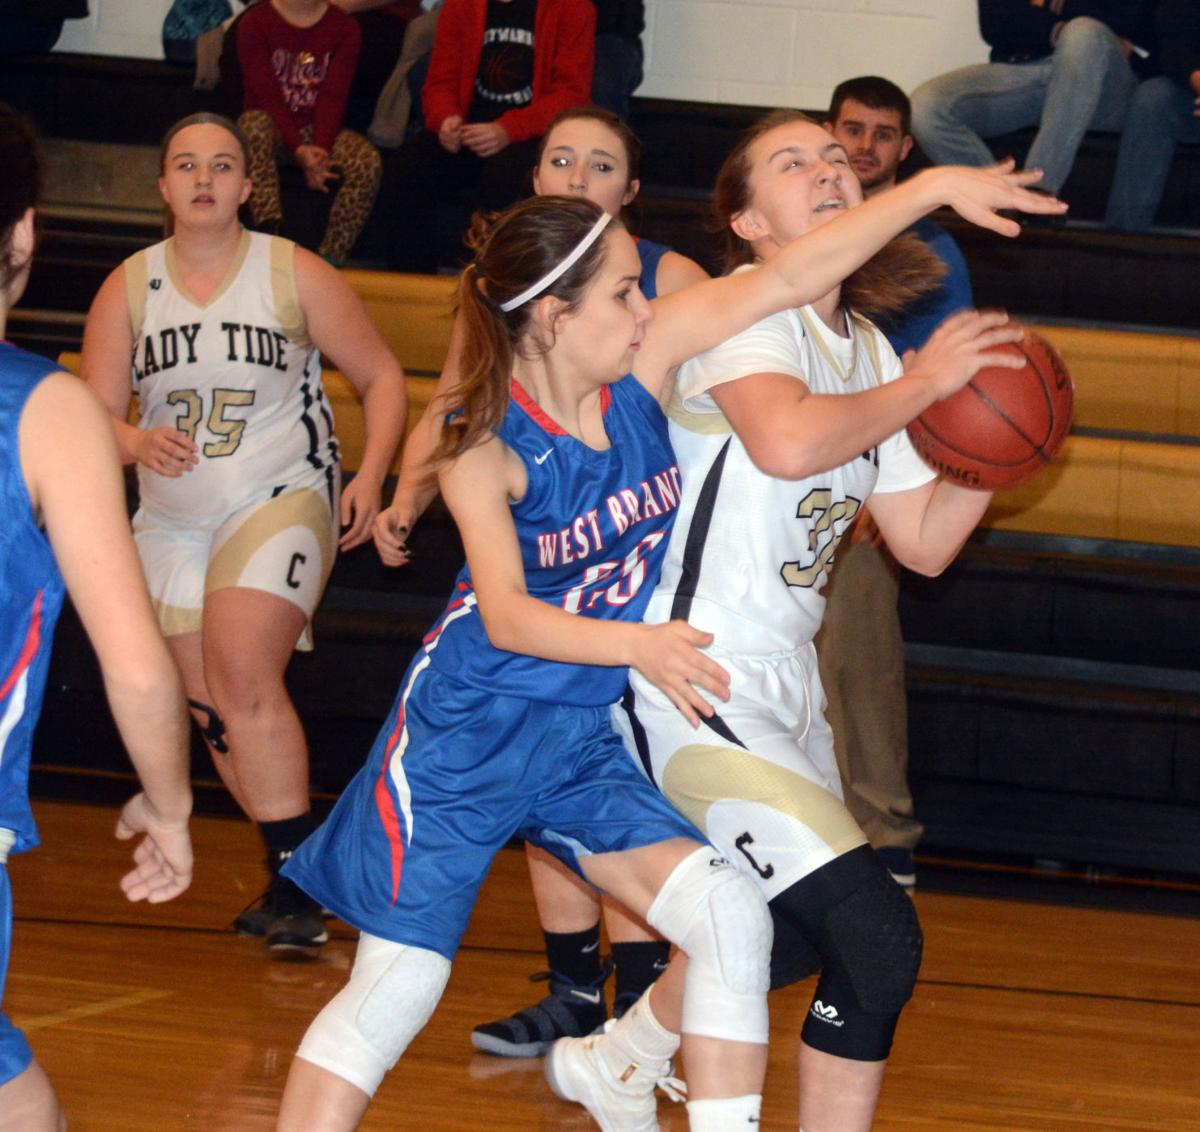 WB's Emily White blocks a shot of a Curwensville player